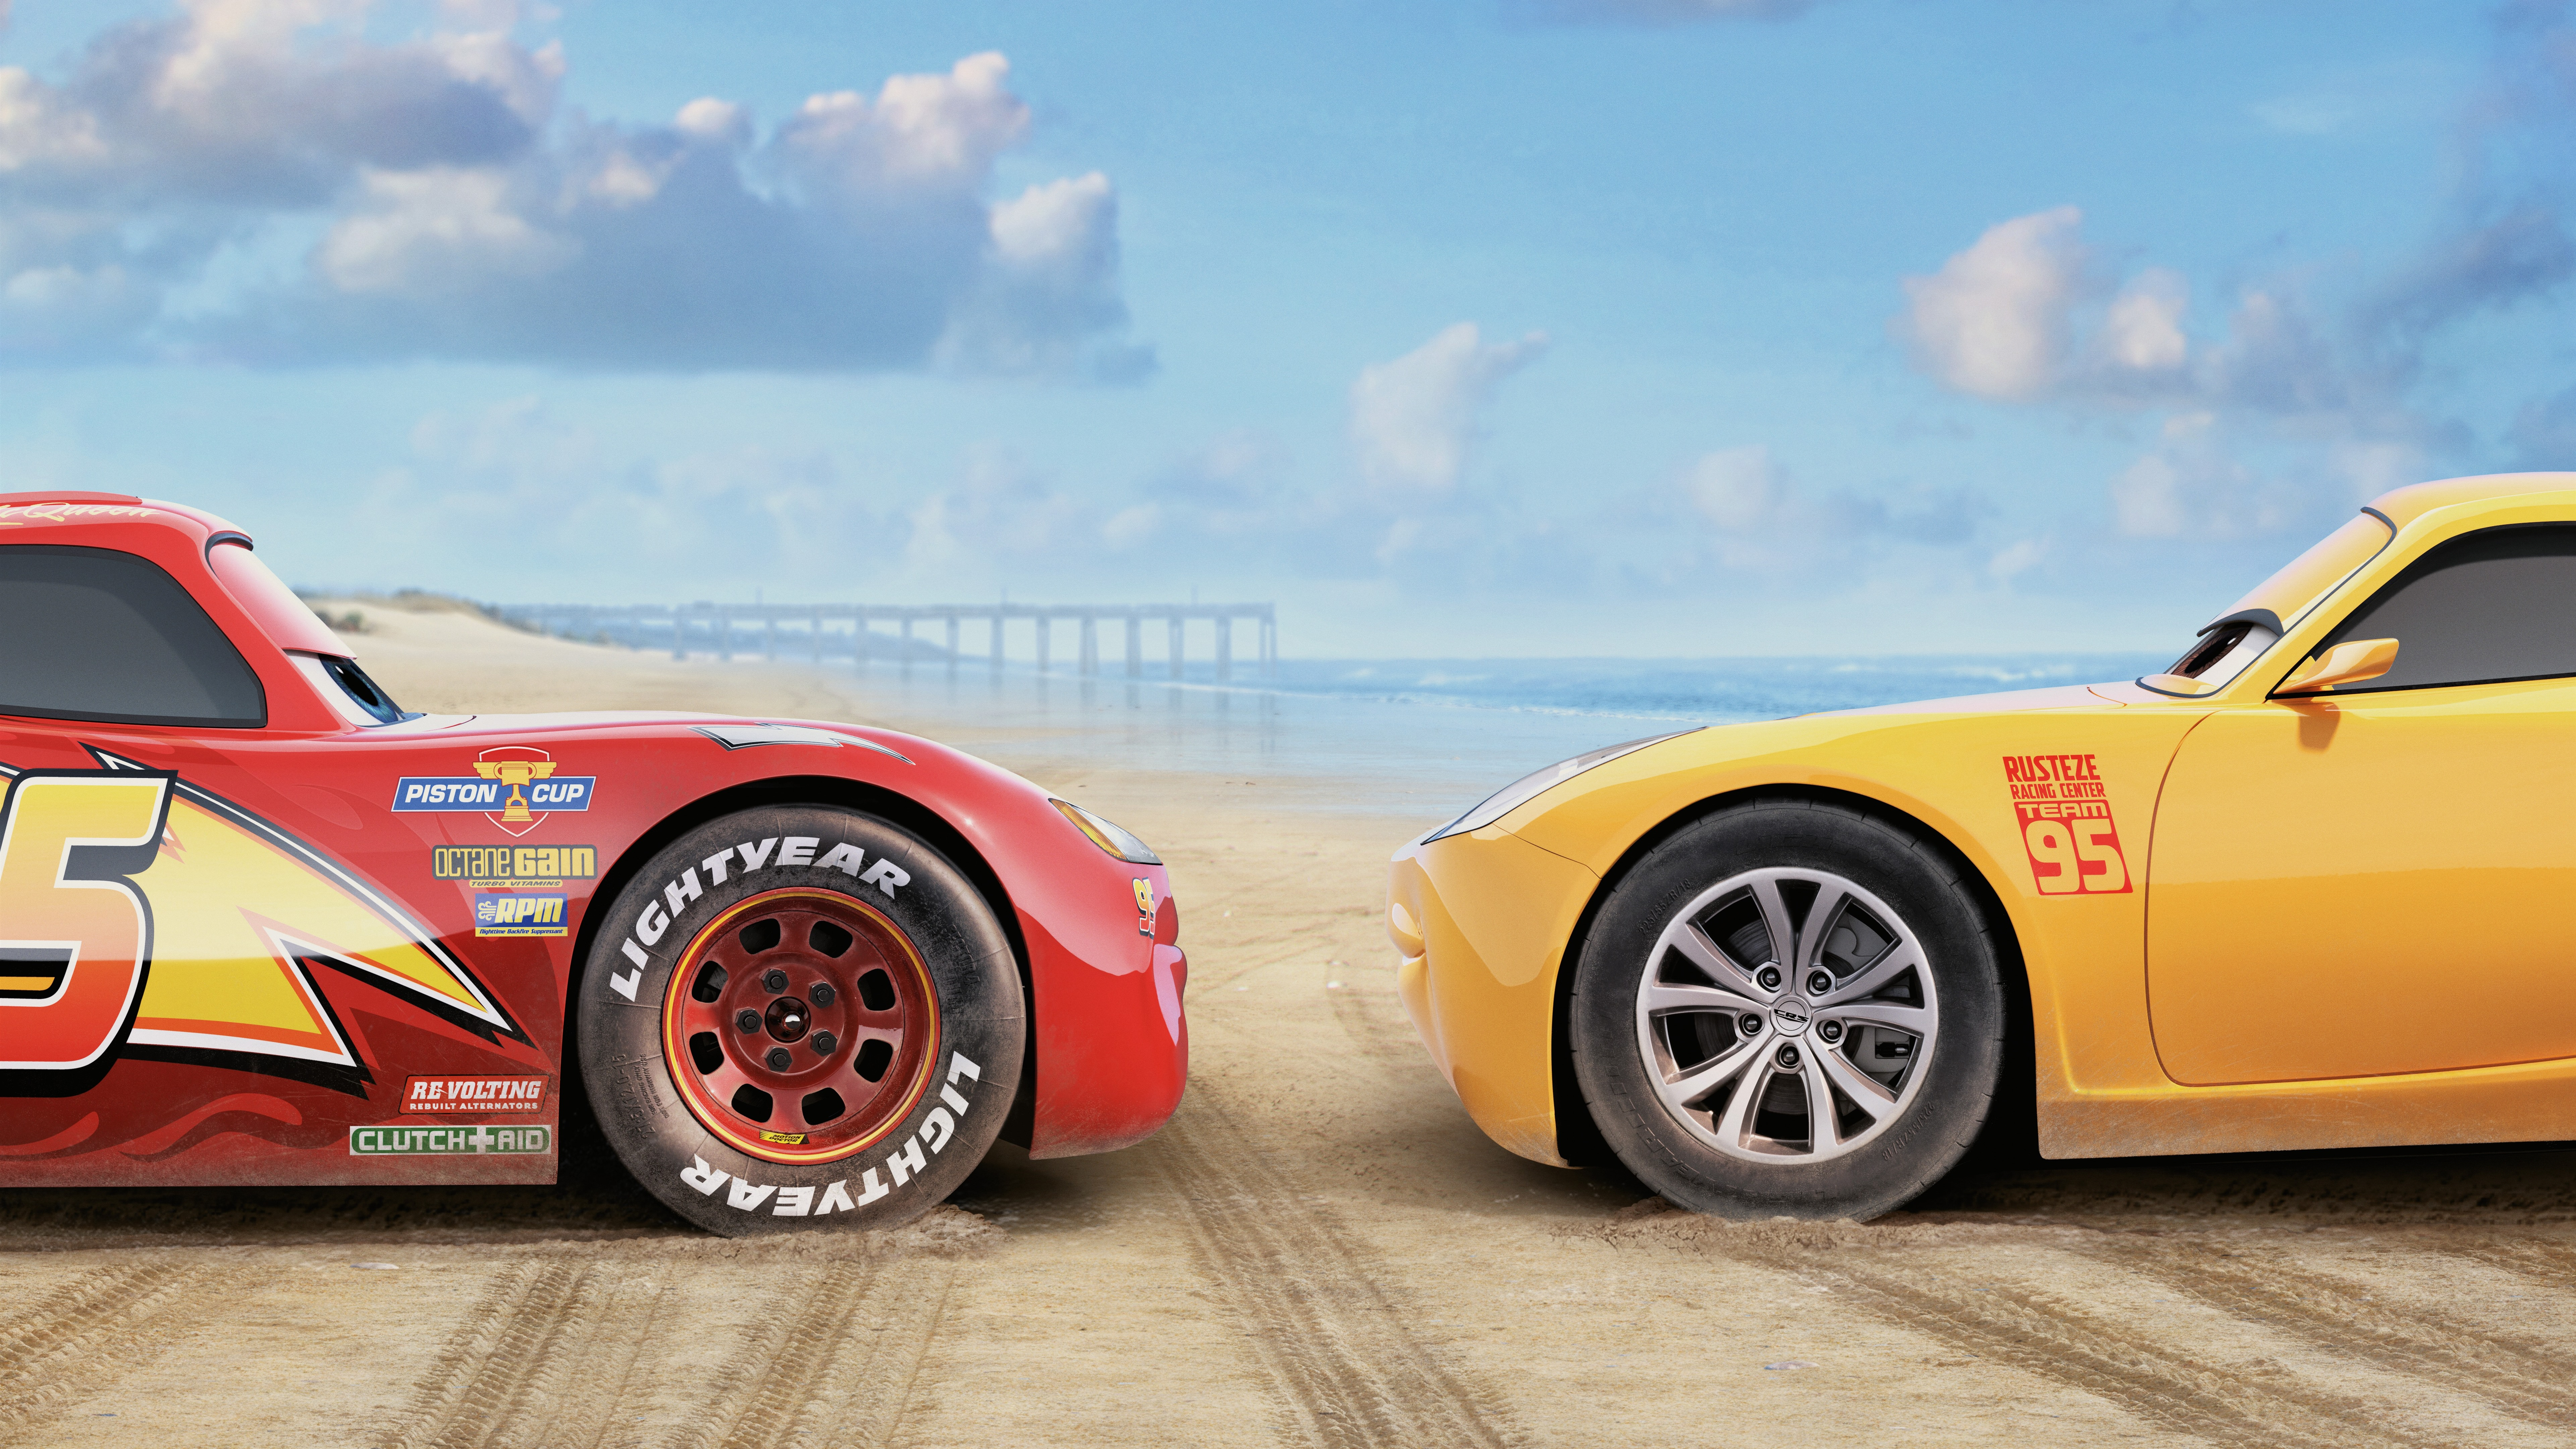 Wallpaper Cars 3 Red And Yellow Car 7680x4320 Uhd 8k Picture Image